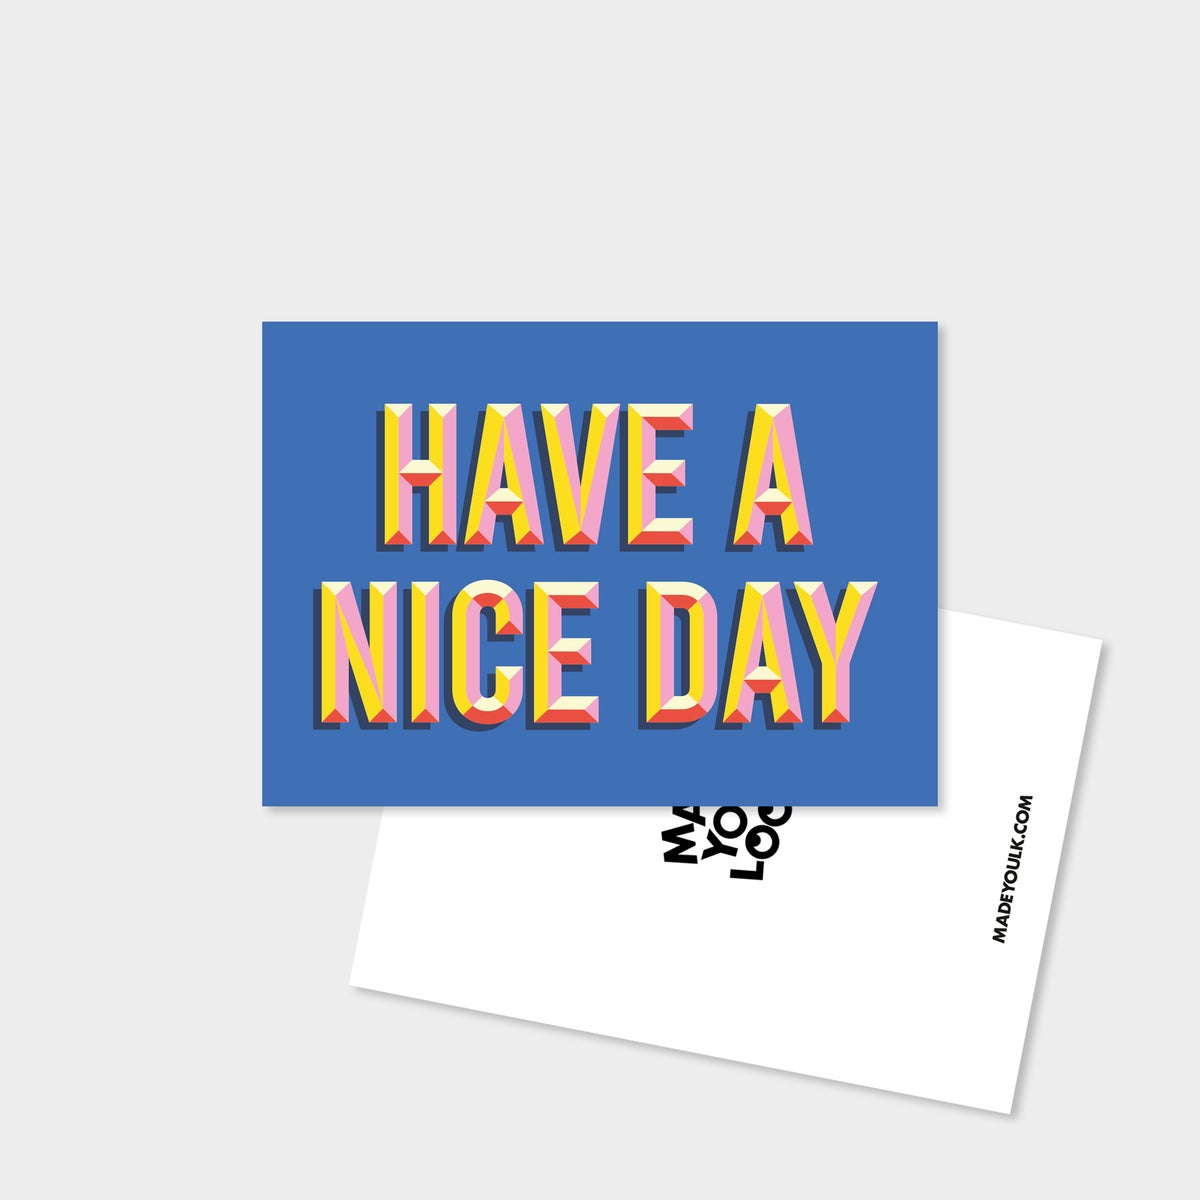 Have A Nice Day - Mini Print